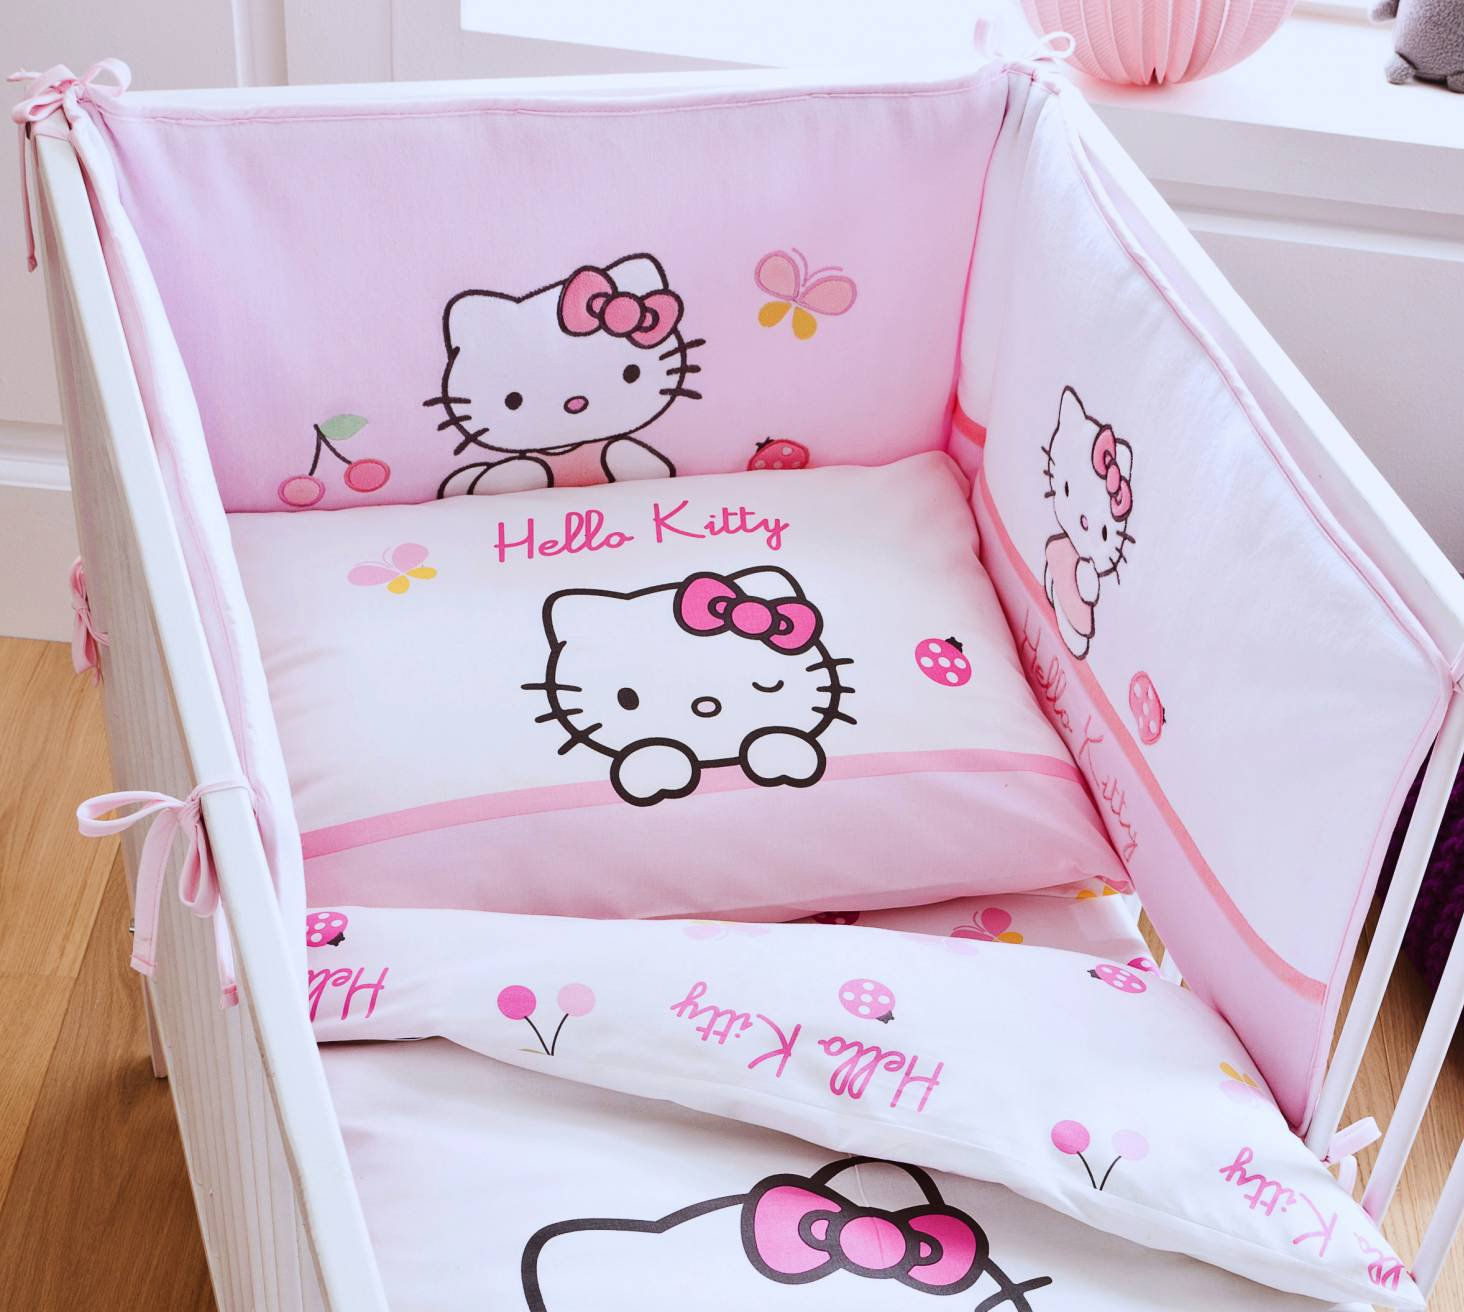 tour de lit hello kitty int rieur maison sur. Black Bedroom Furniture Sets. Home Design Ideas